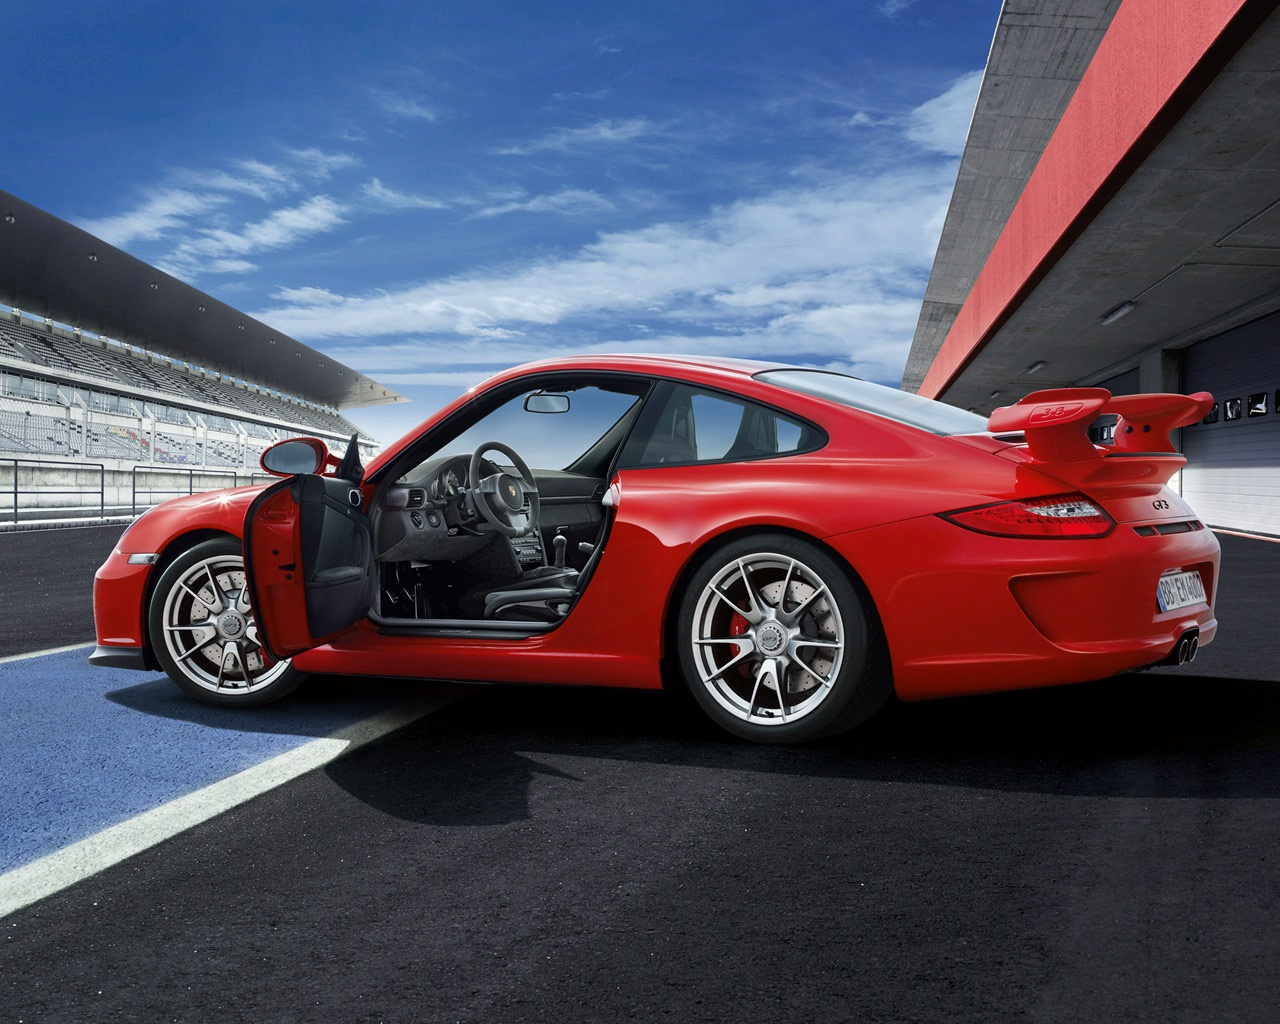 Porsche 911 GT3 - cars catalog, specs, features, photos, videos, review,